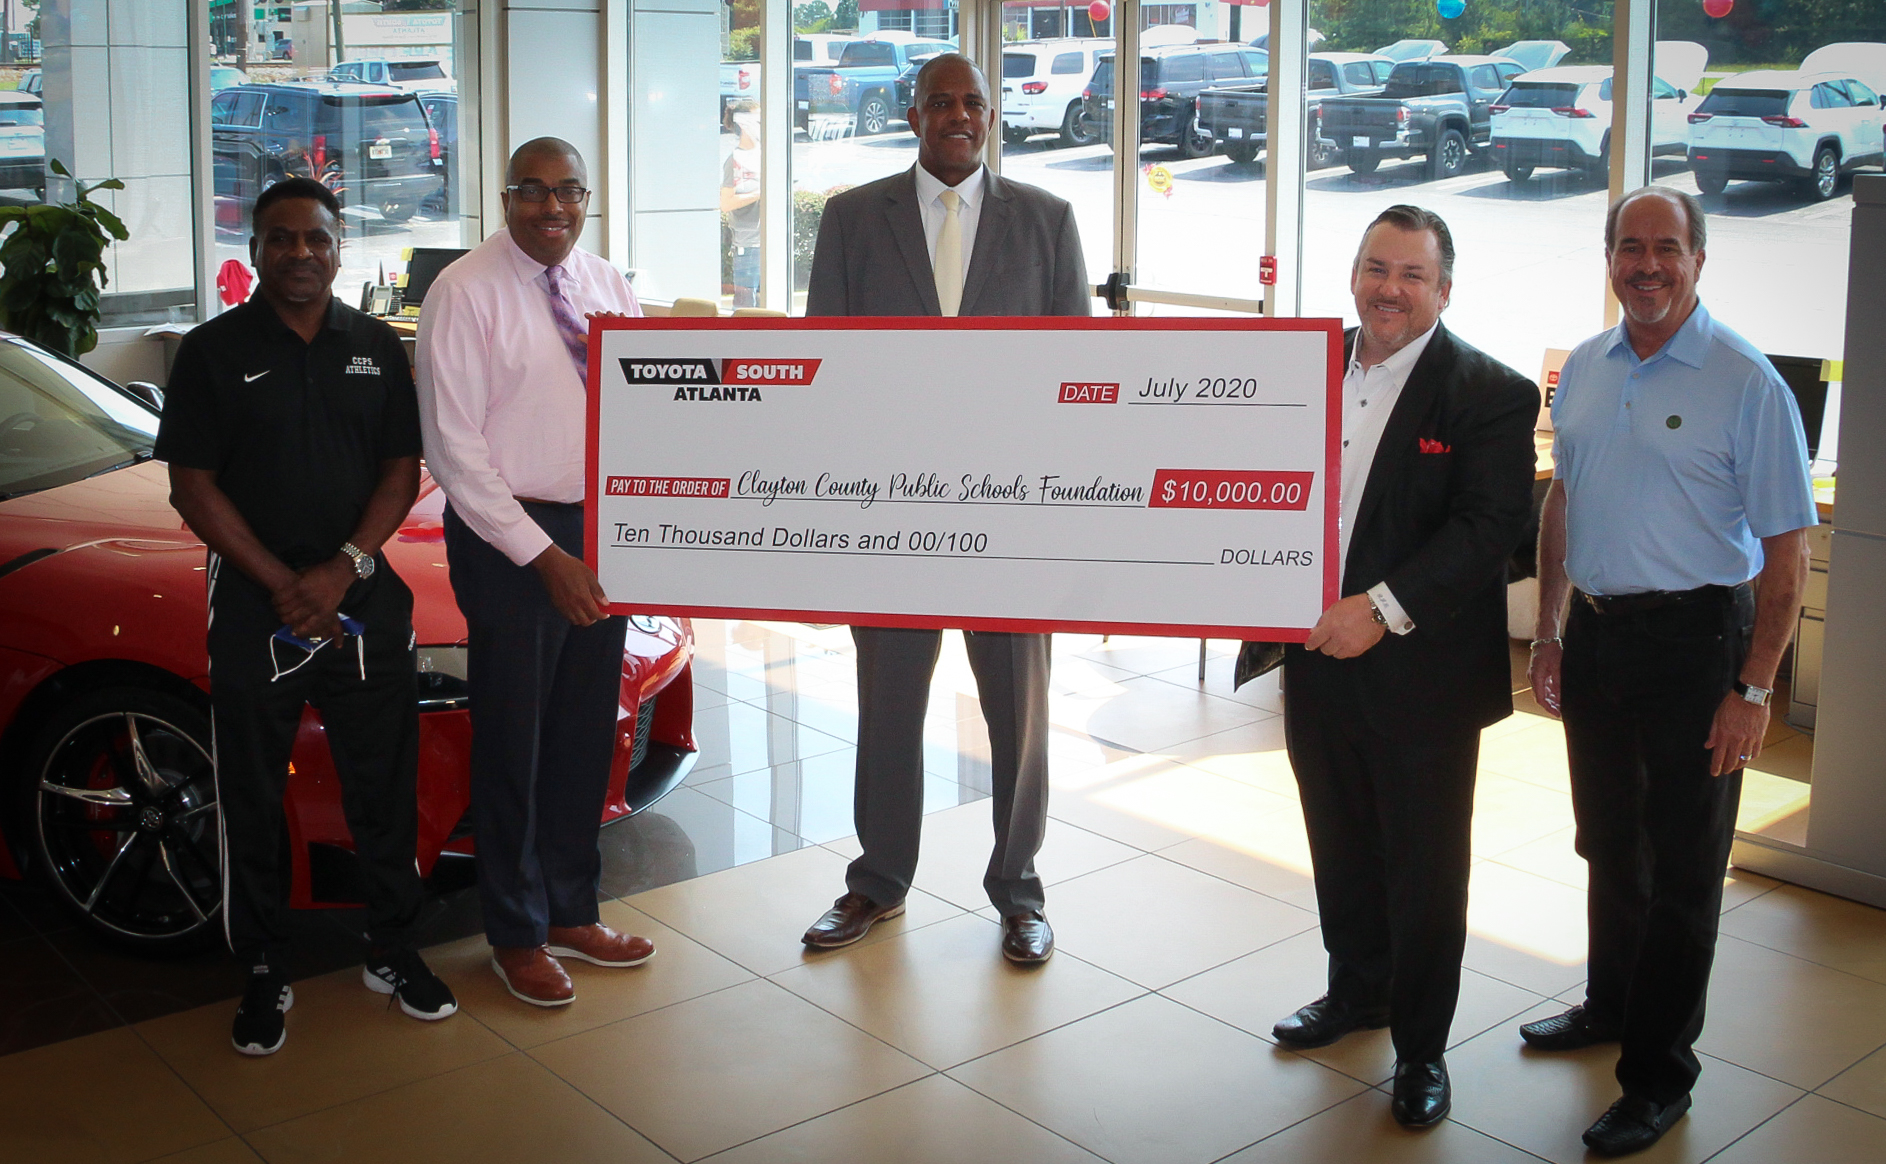 Local Owned Business Toyota South Atlanta Donates $10,000 to the Clayton County Public School Foundation